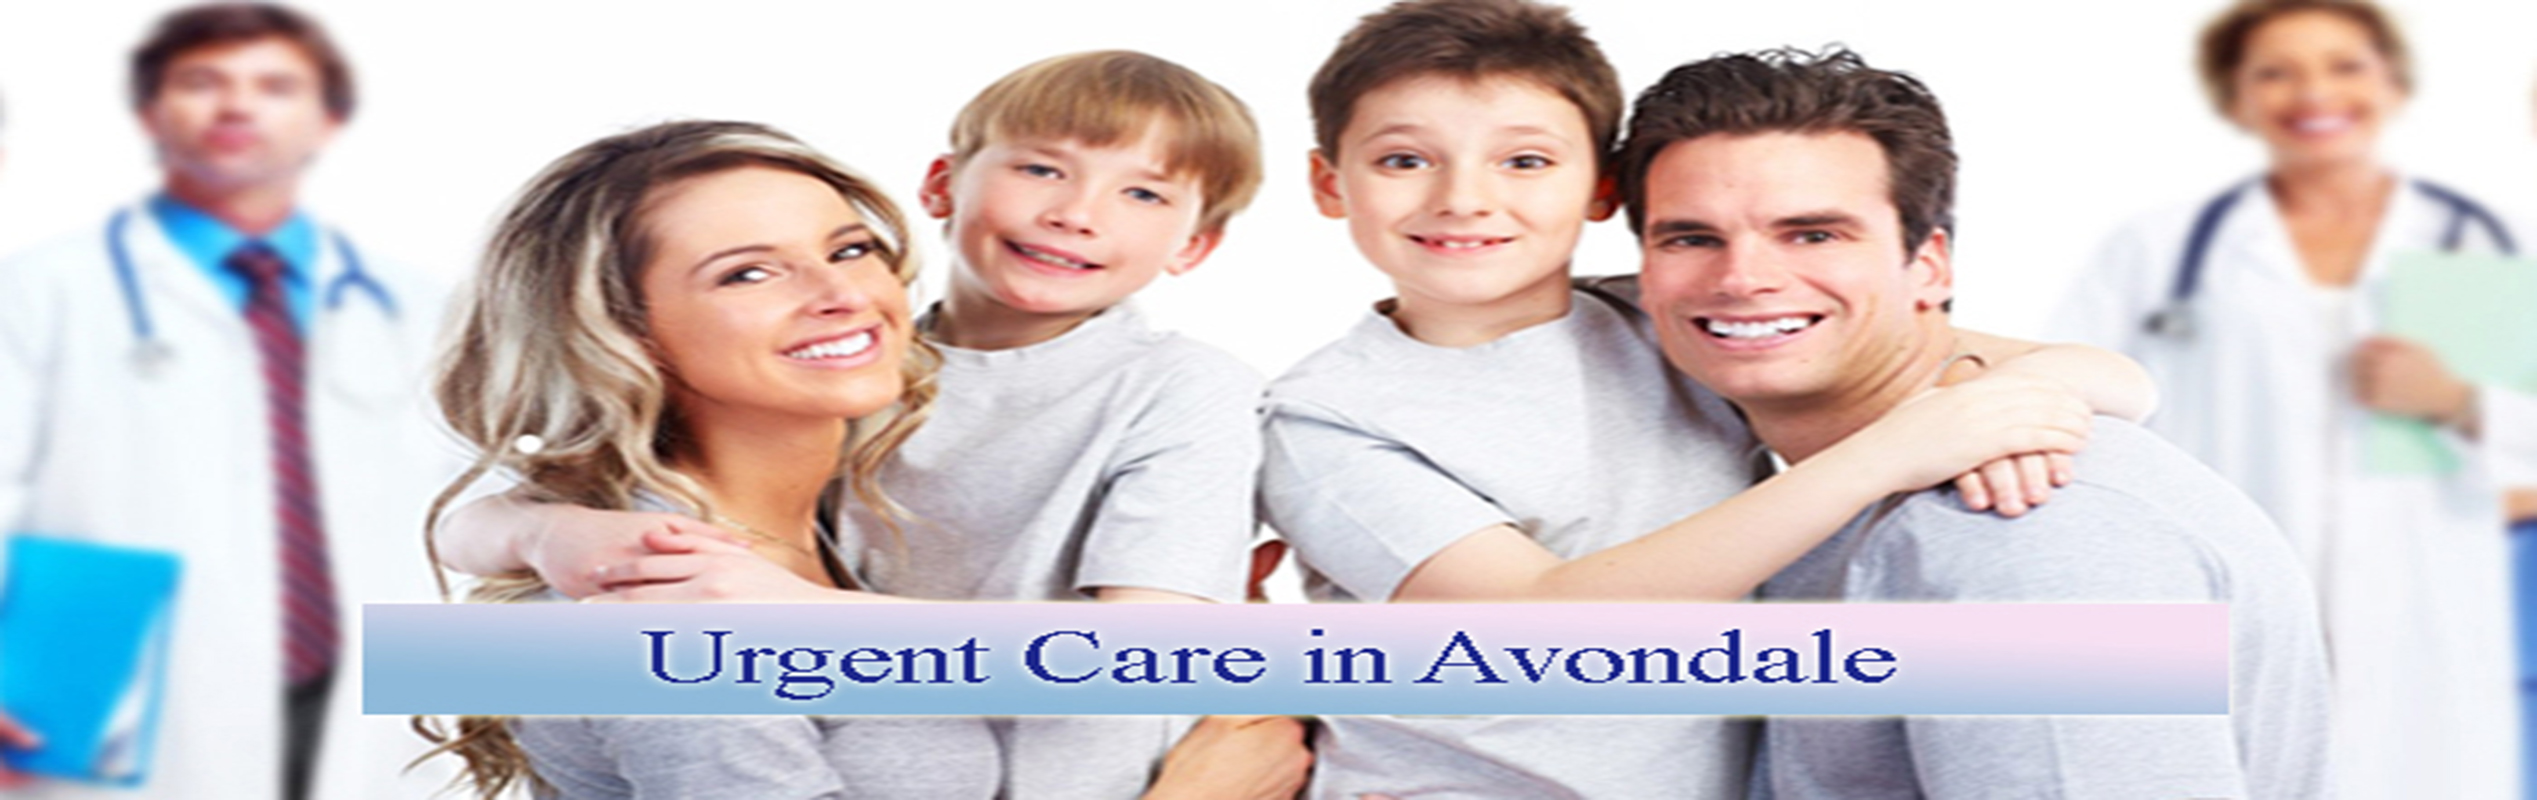 Urgent Care in Avondale